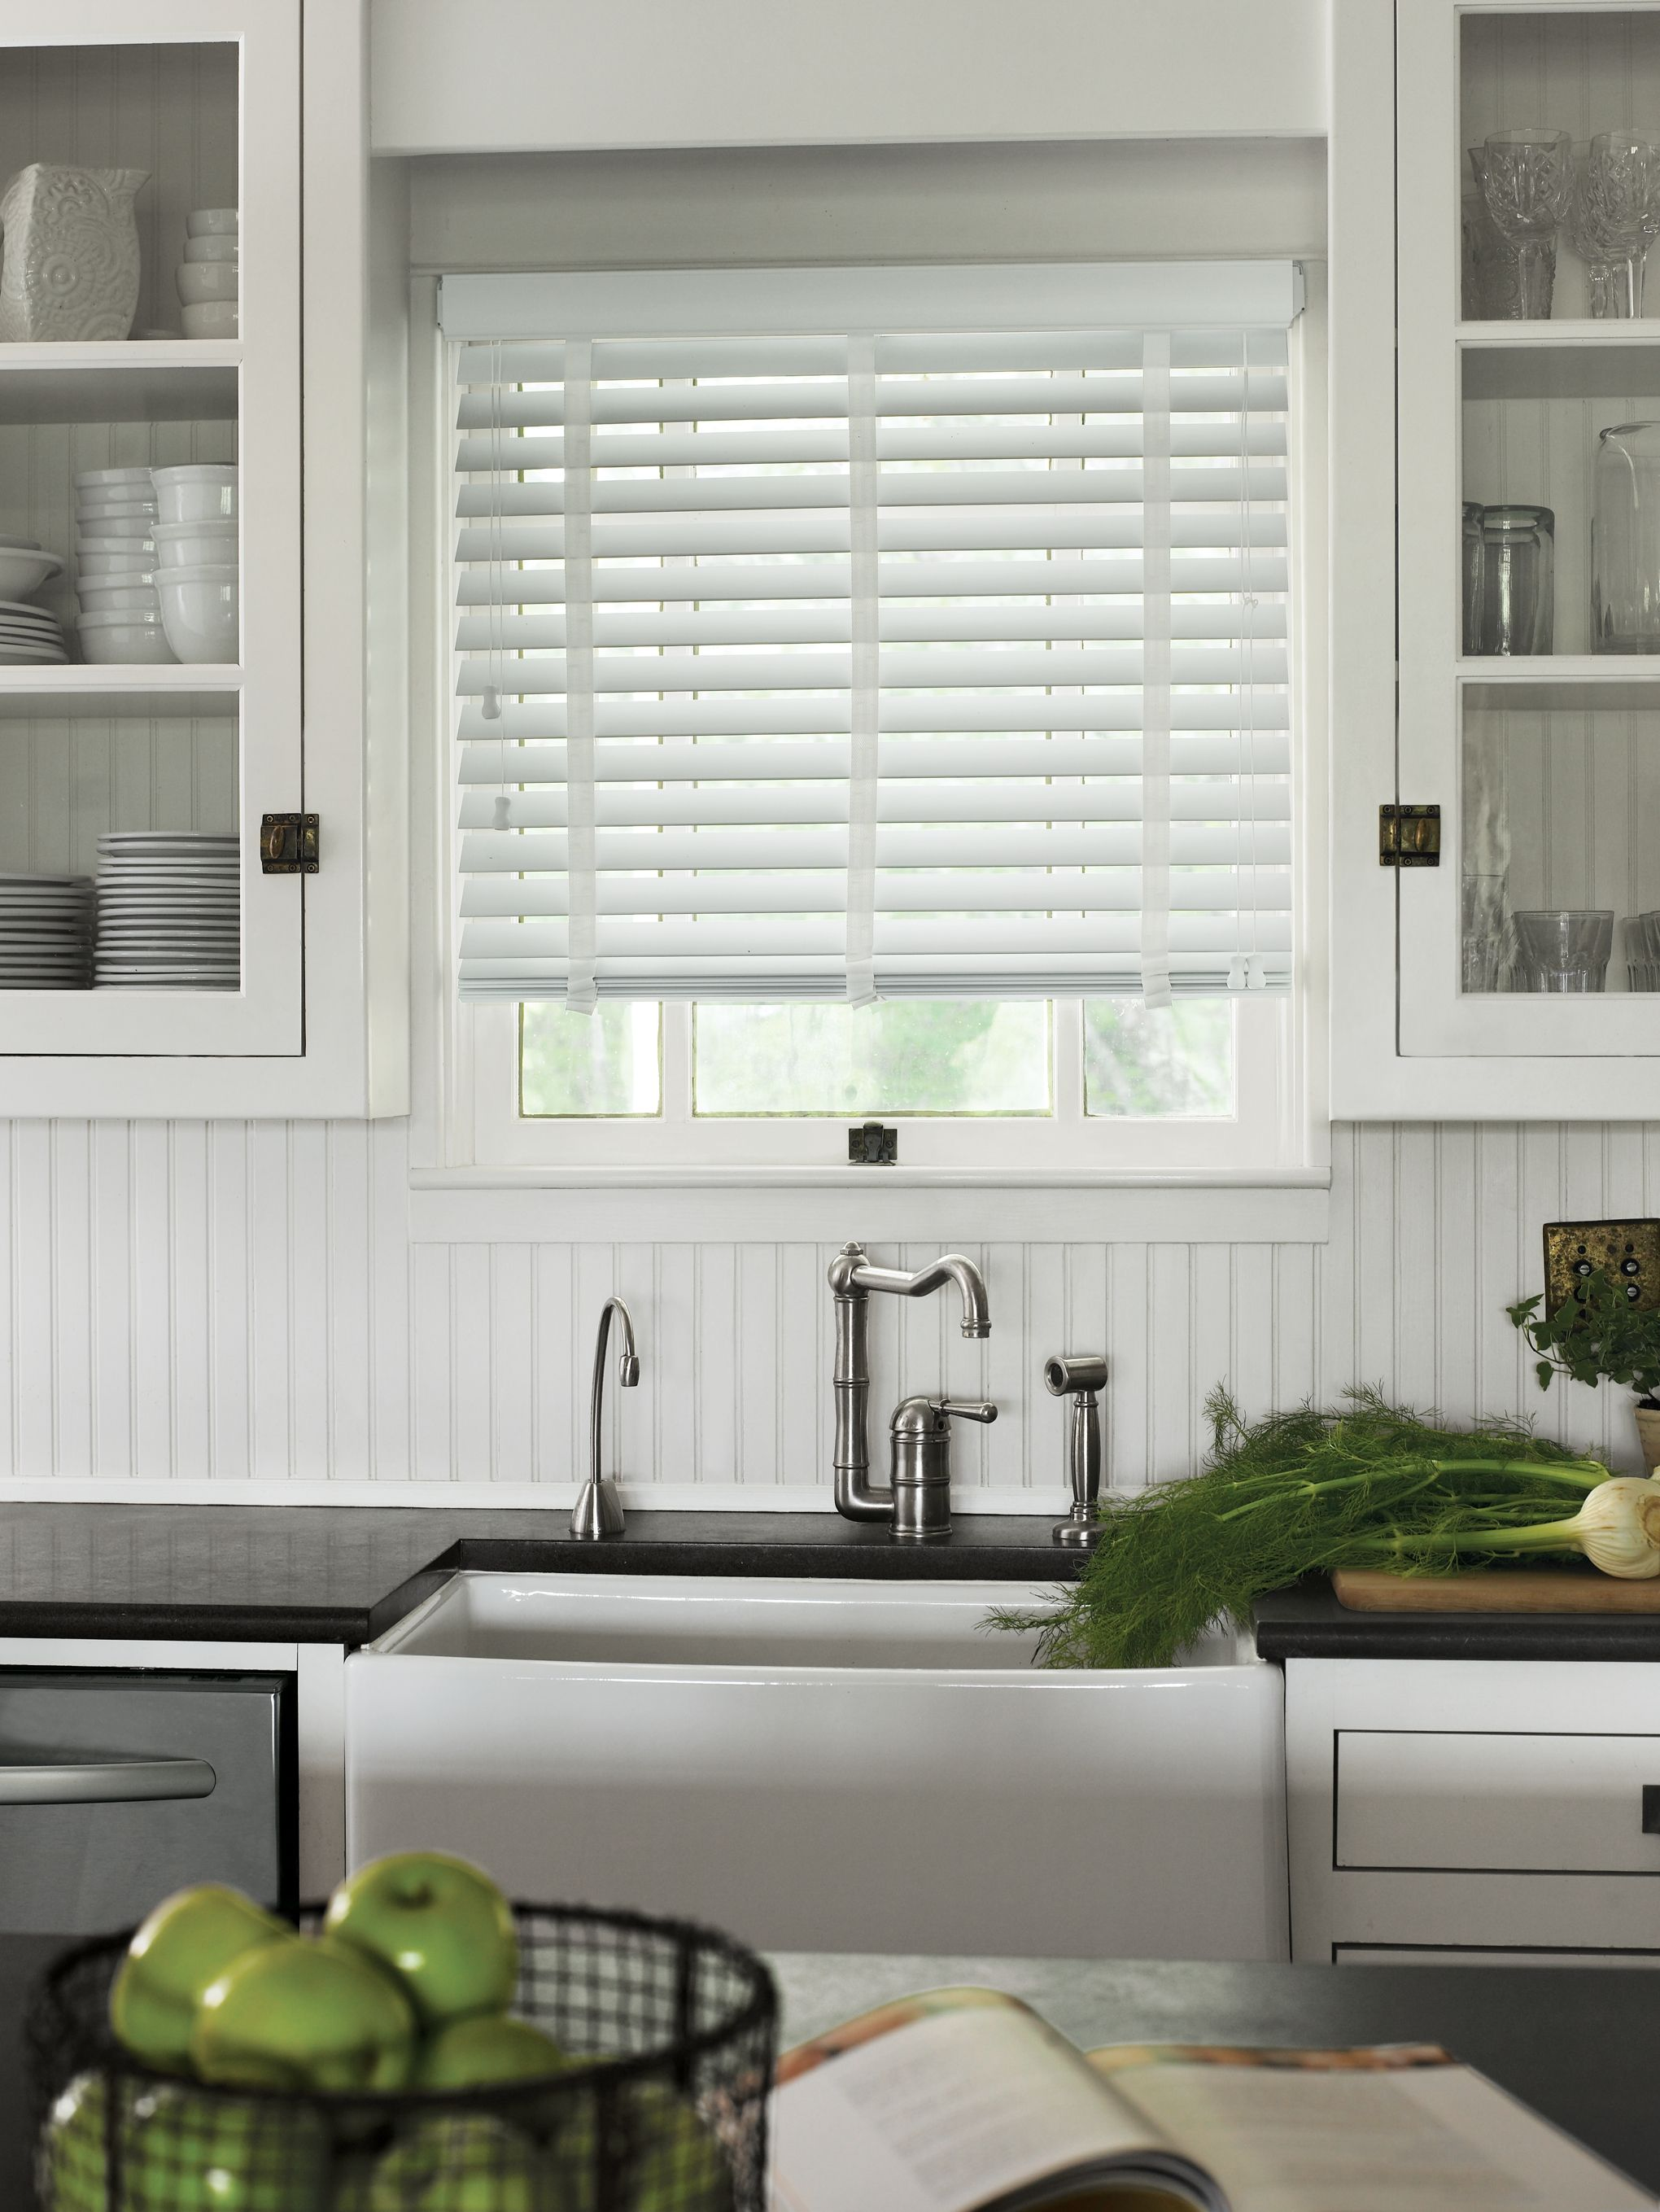 White Timber Blinds Wood Blinds Blinds Kitchen Window Treatments With Blinds